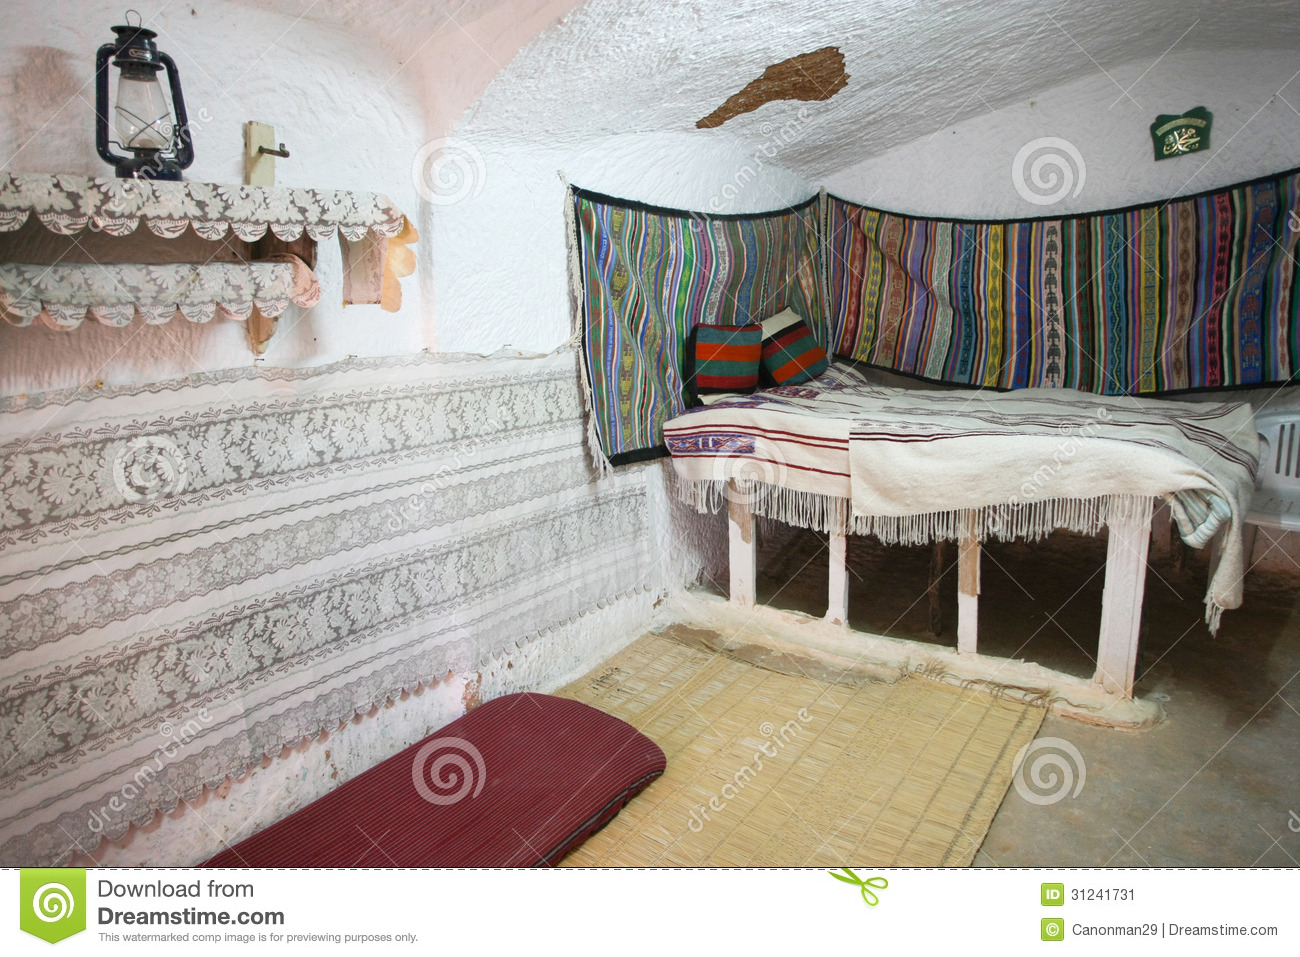 chambre coucher dans la maison originale de troglodyte image stock image 31241731. Black Bedroom Furniture Sets. Home Design Ideas